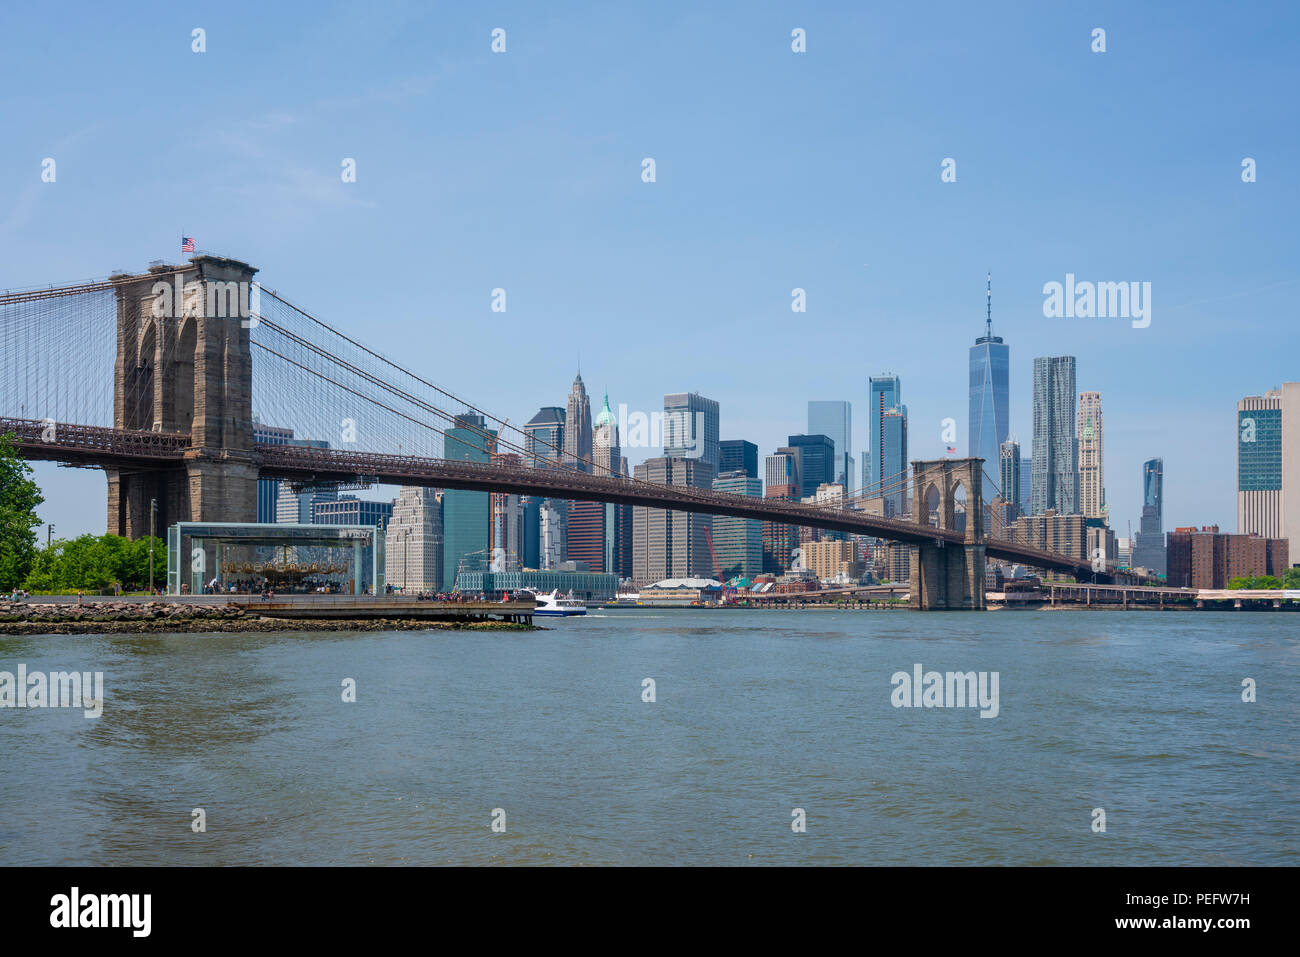 Manhattan skyline and Brooklyn Bridge in daytime - Stock Image